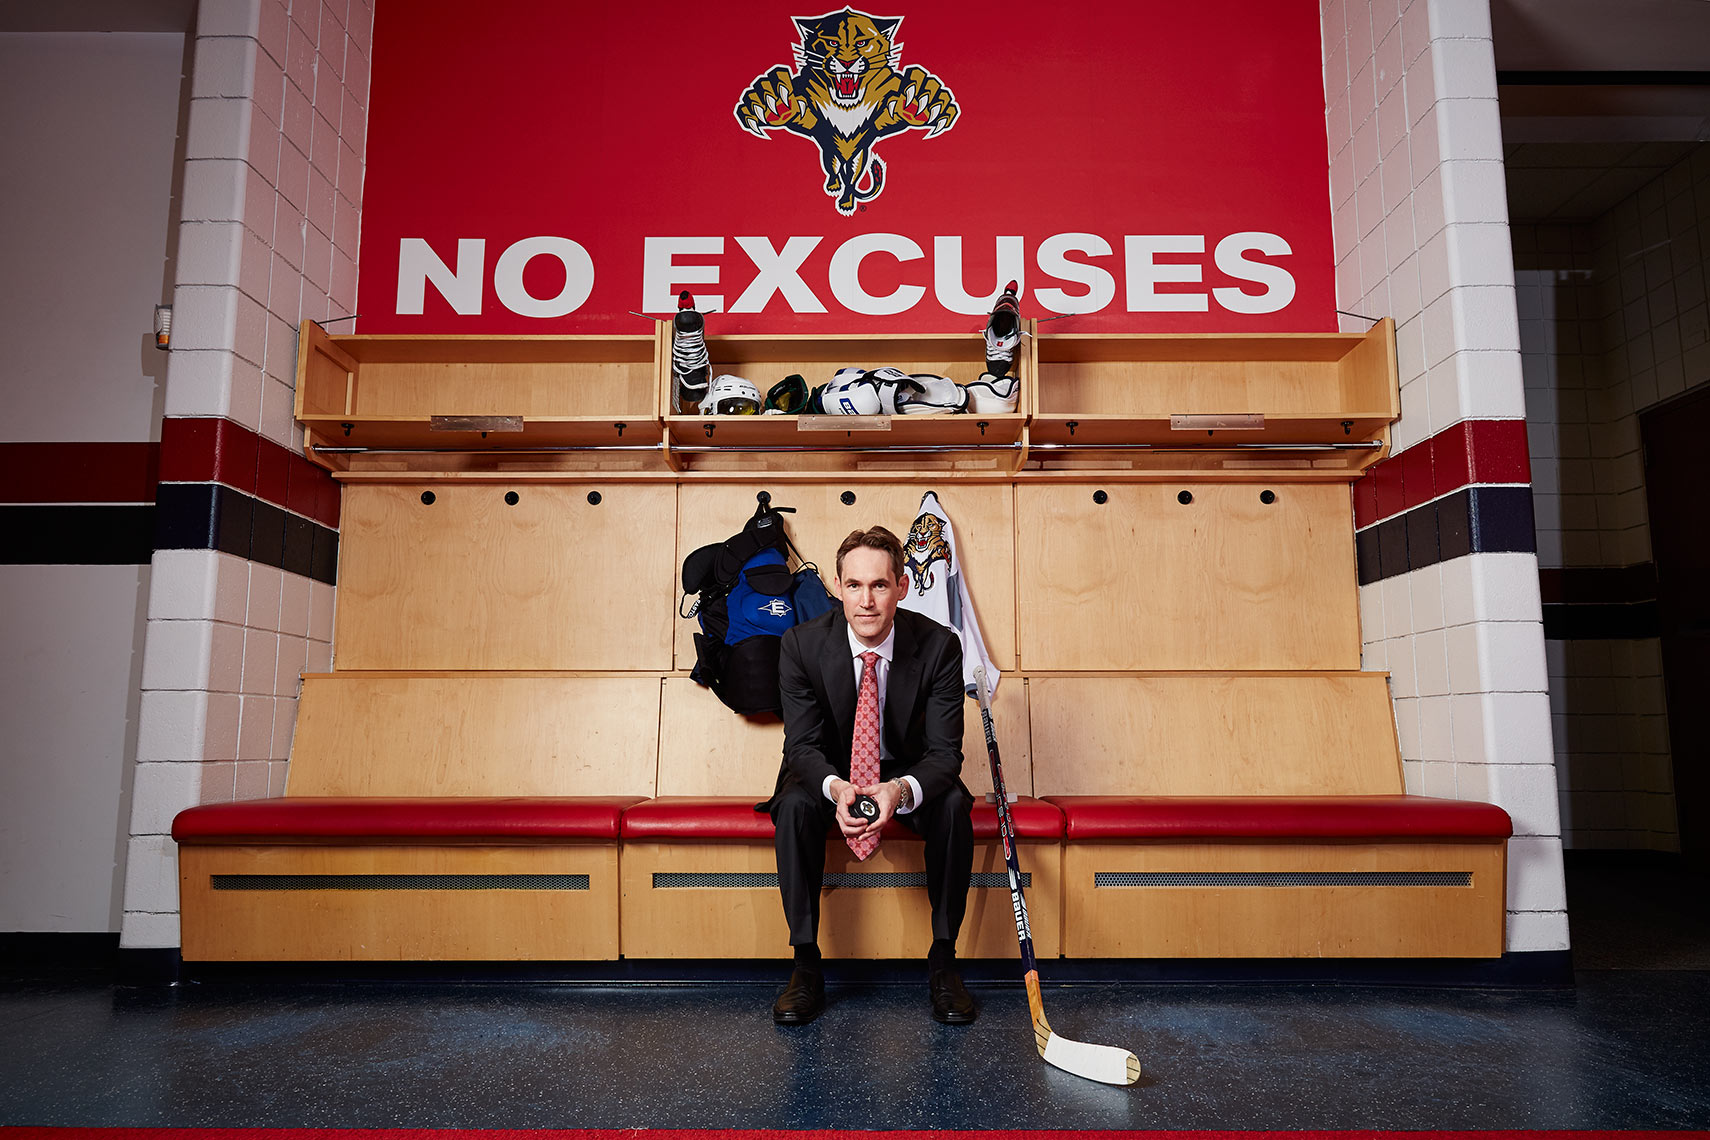 JOHN SPADEFLORIDA PANTHERS / NHL